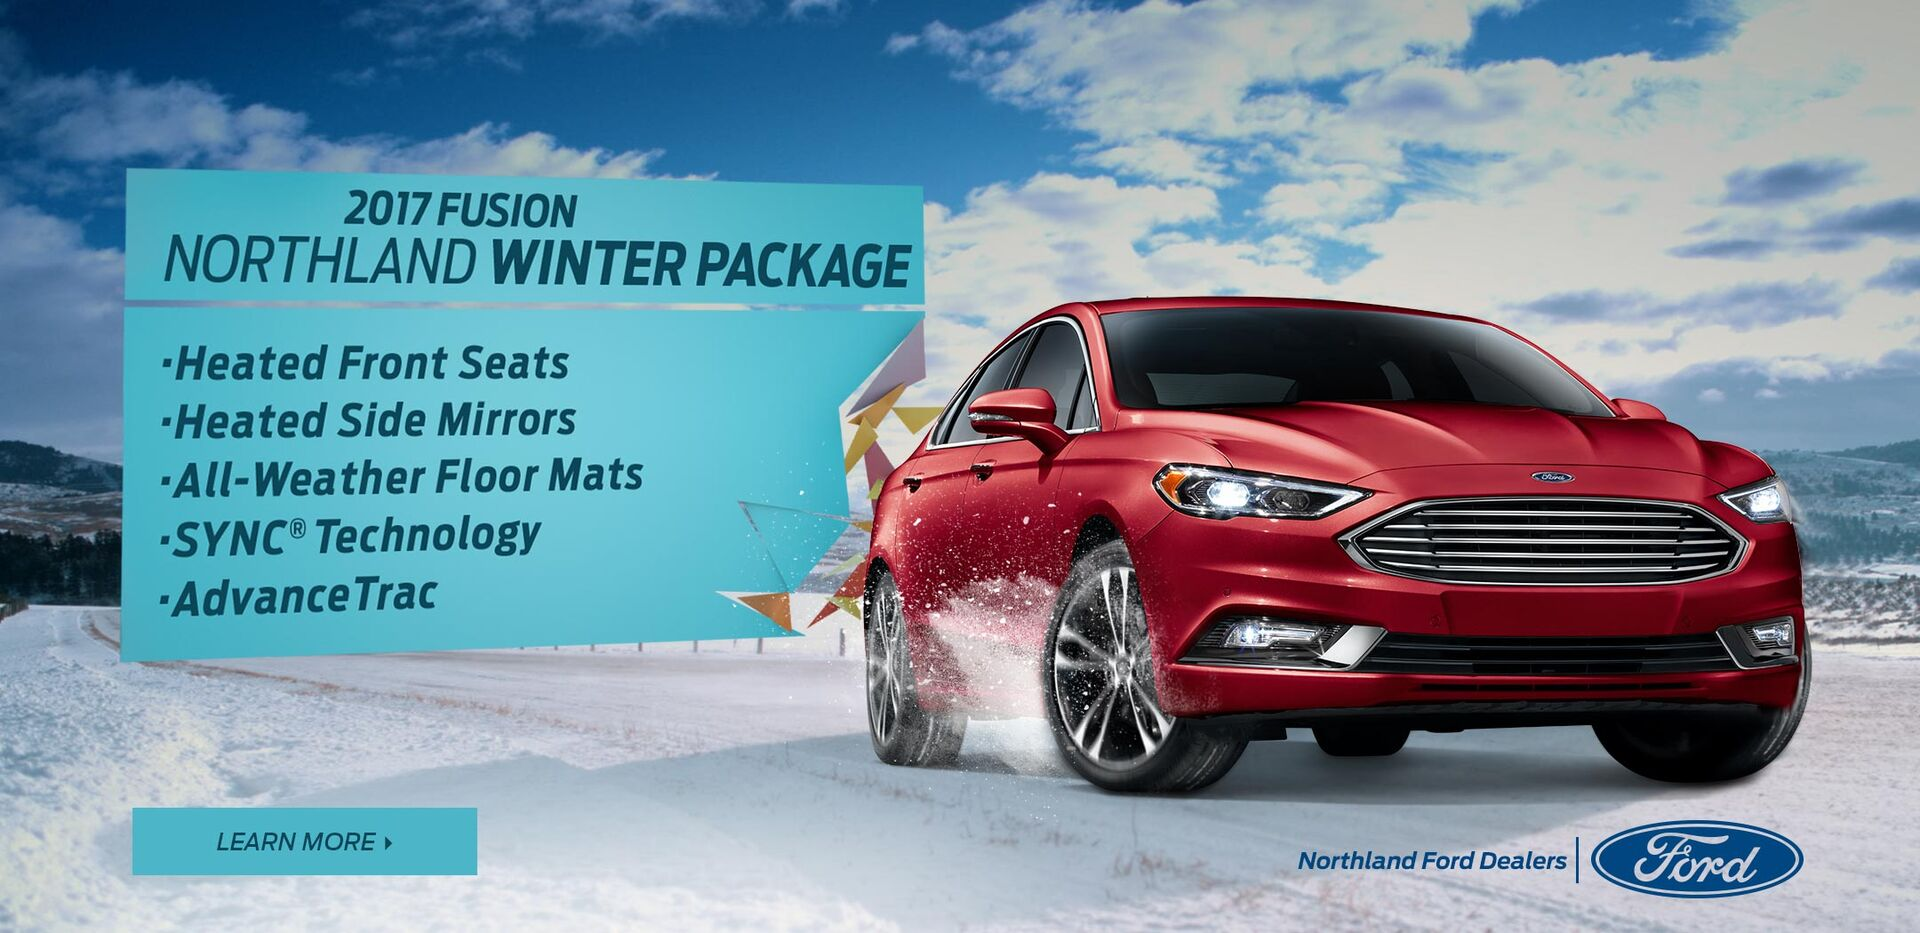 2017 Fusion Winter Package